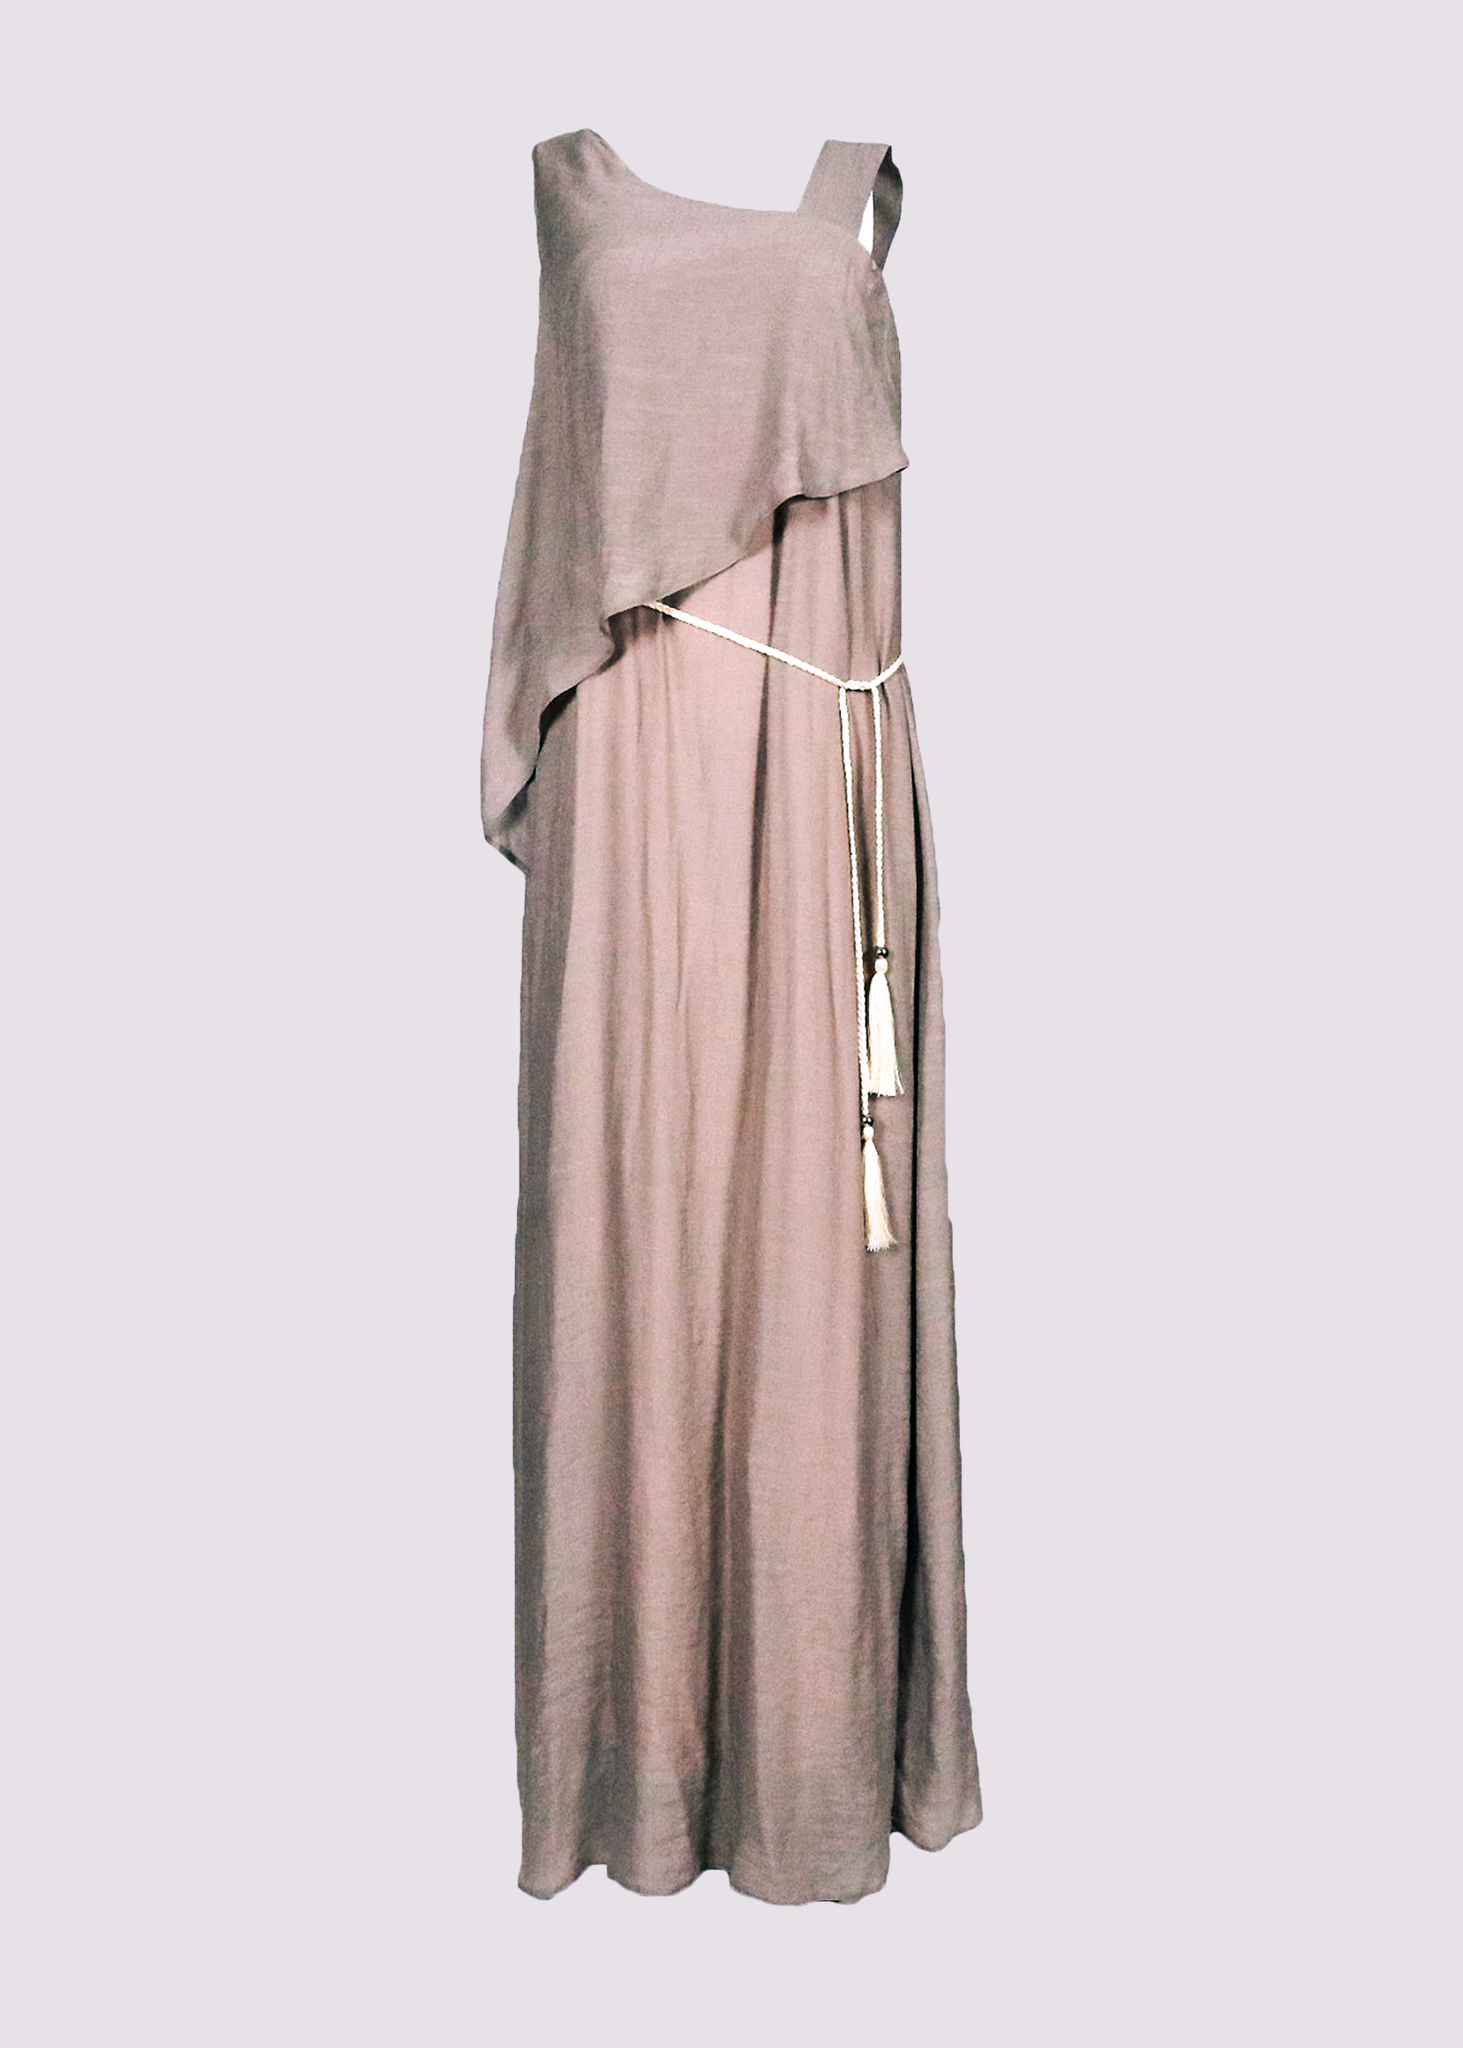 Maxi dress with rope belt in cigar